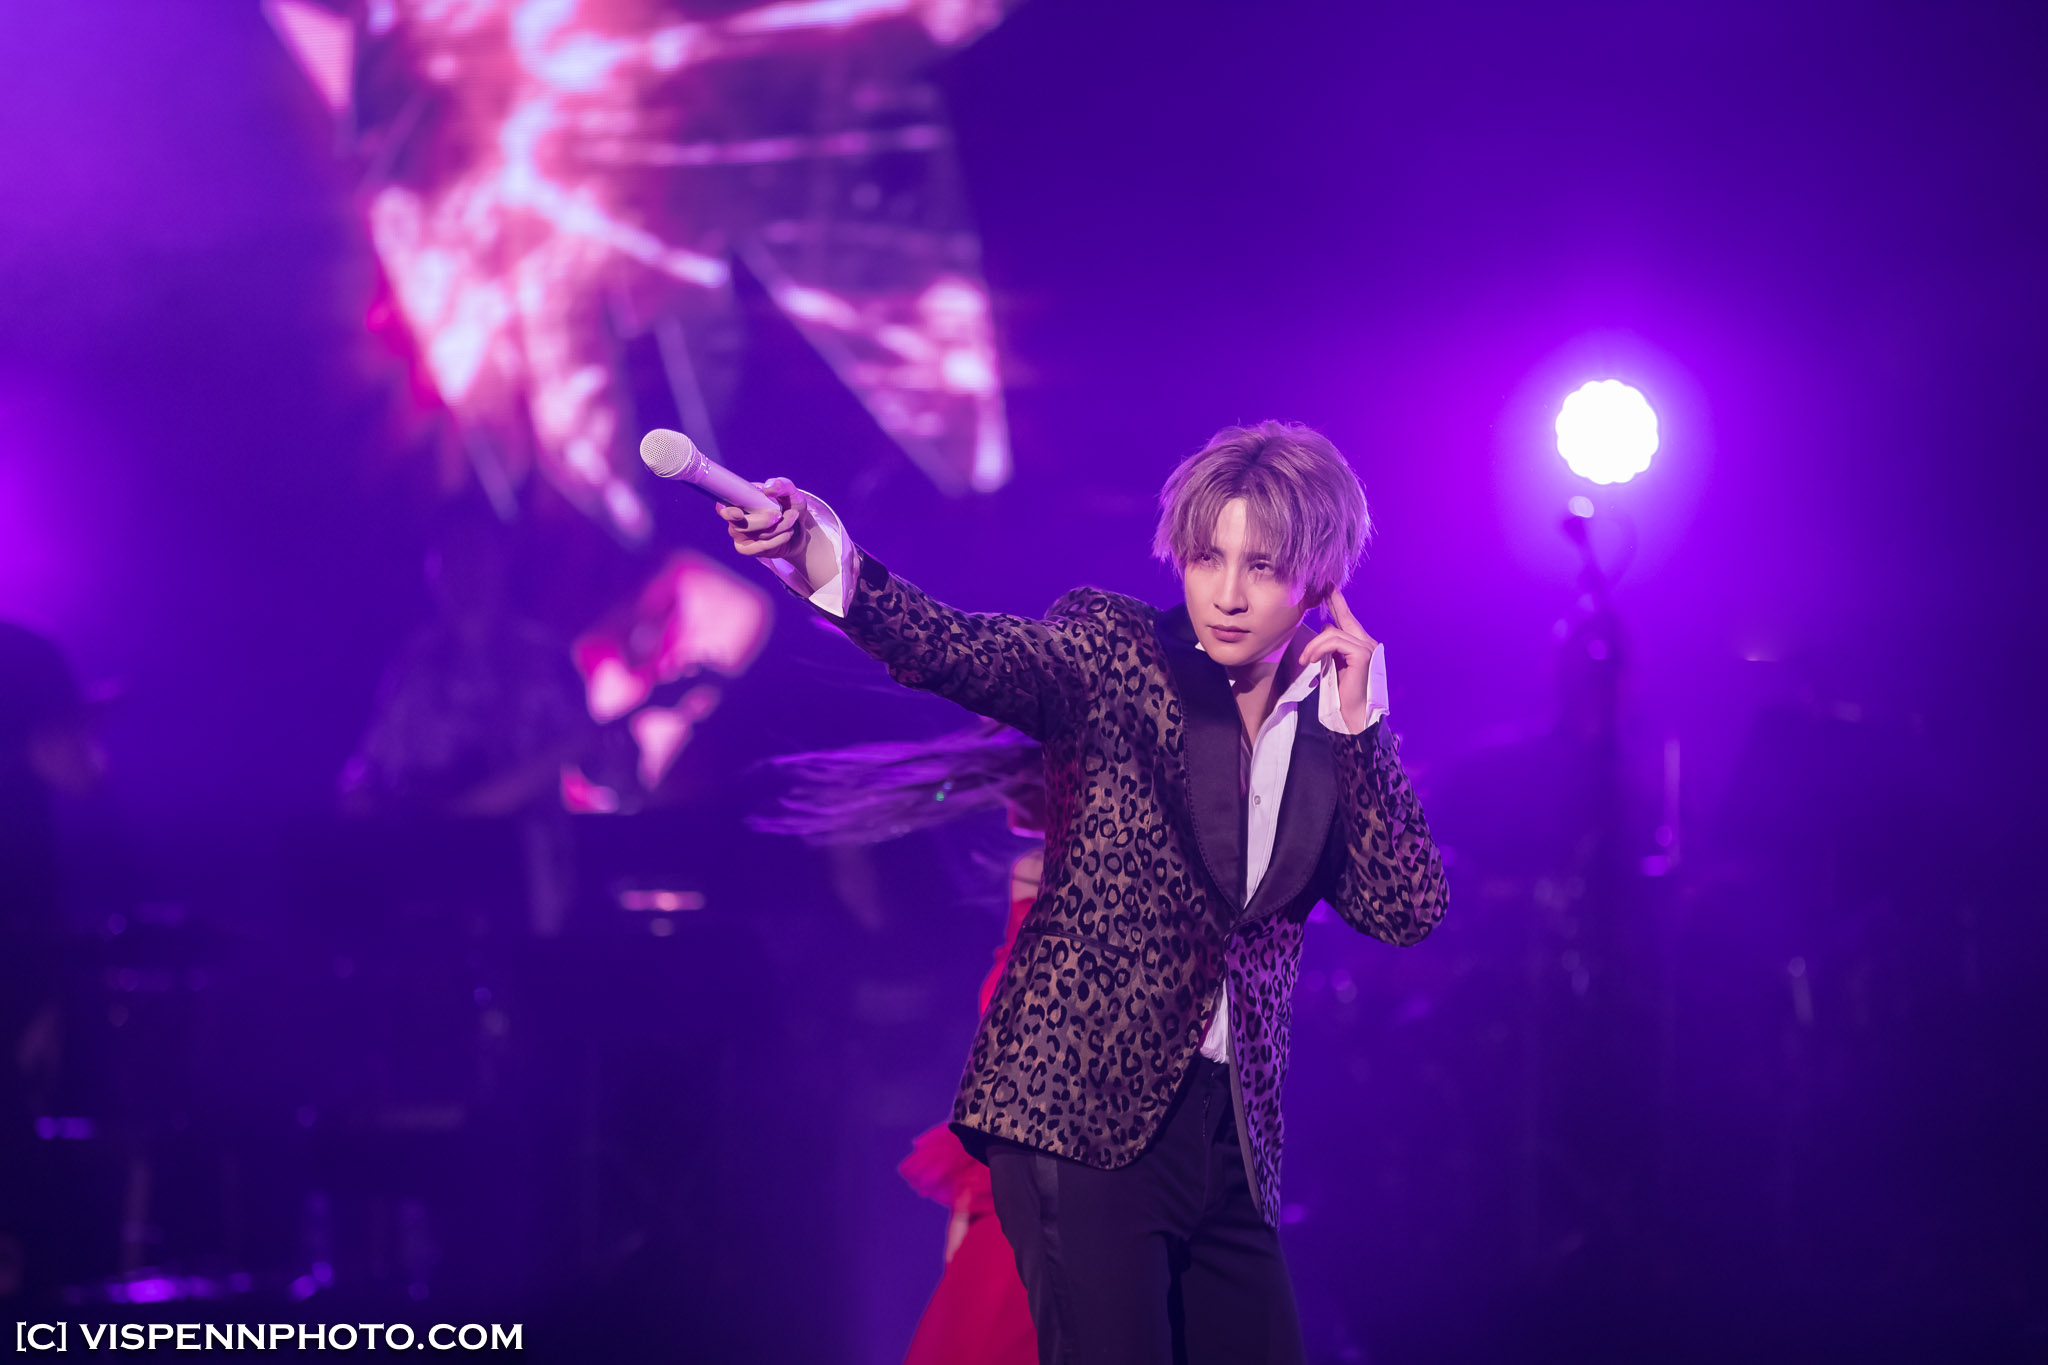 Melbourne CONCERTS Photography 墨尔本 演唱会 照片 摄影师 VISPENN JokerXUE 3H 7008 5D4 VISPENN